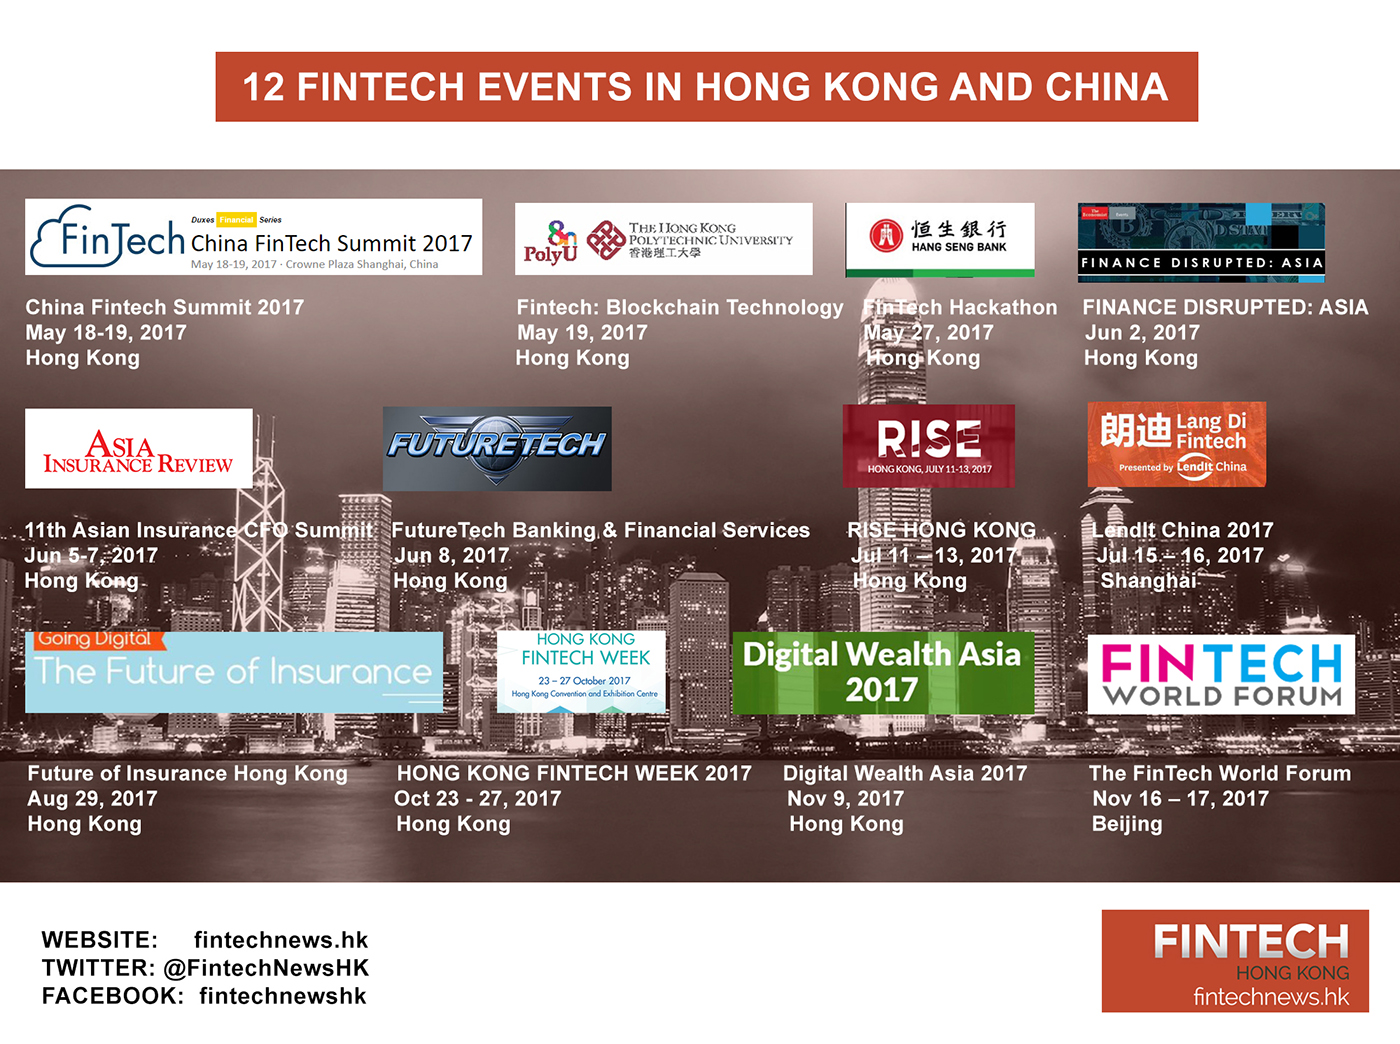 fintech events hong kong china 2017 fintechnews